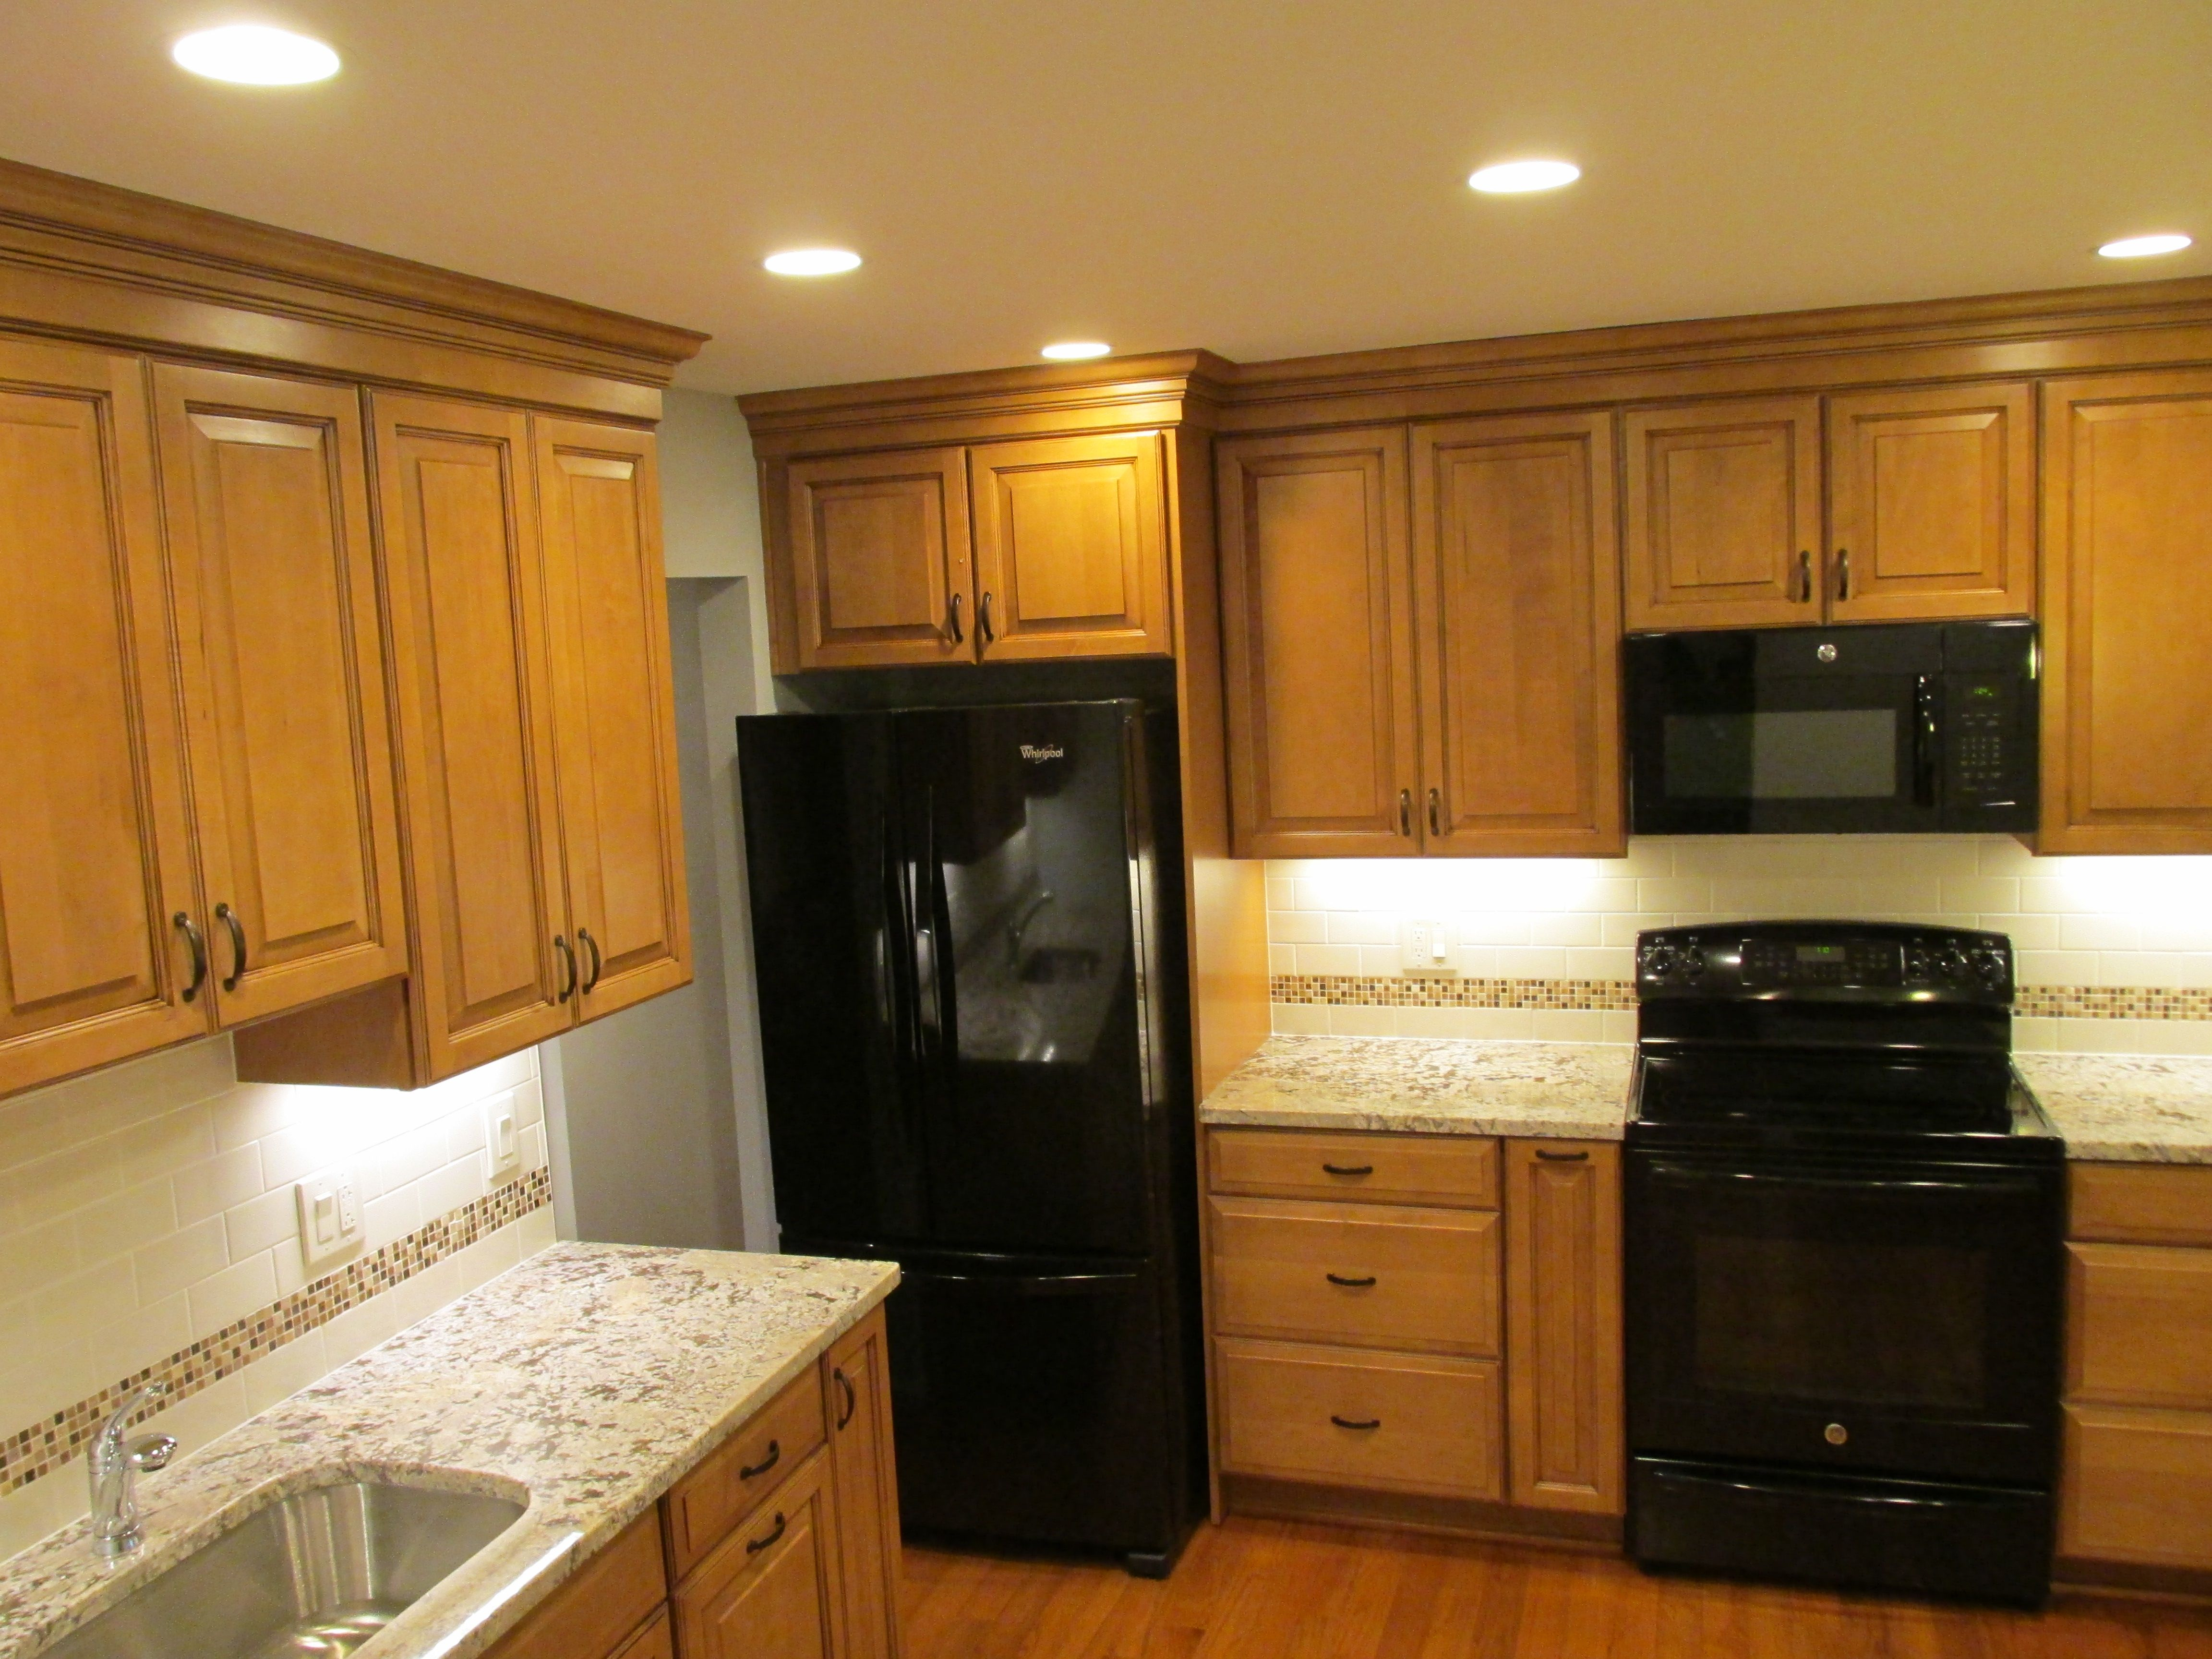 Marvelous This Is A Complete Remodeling Kitchen With Bruce Manchester Hardwood. We  Combined Maple Wood Mocha